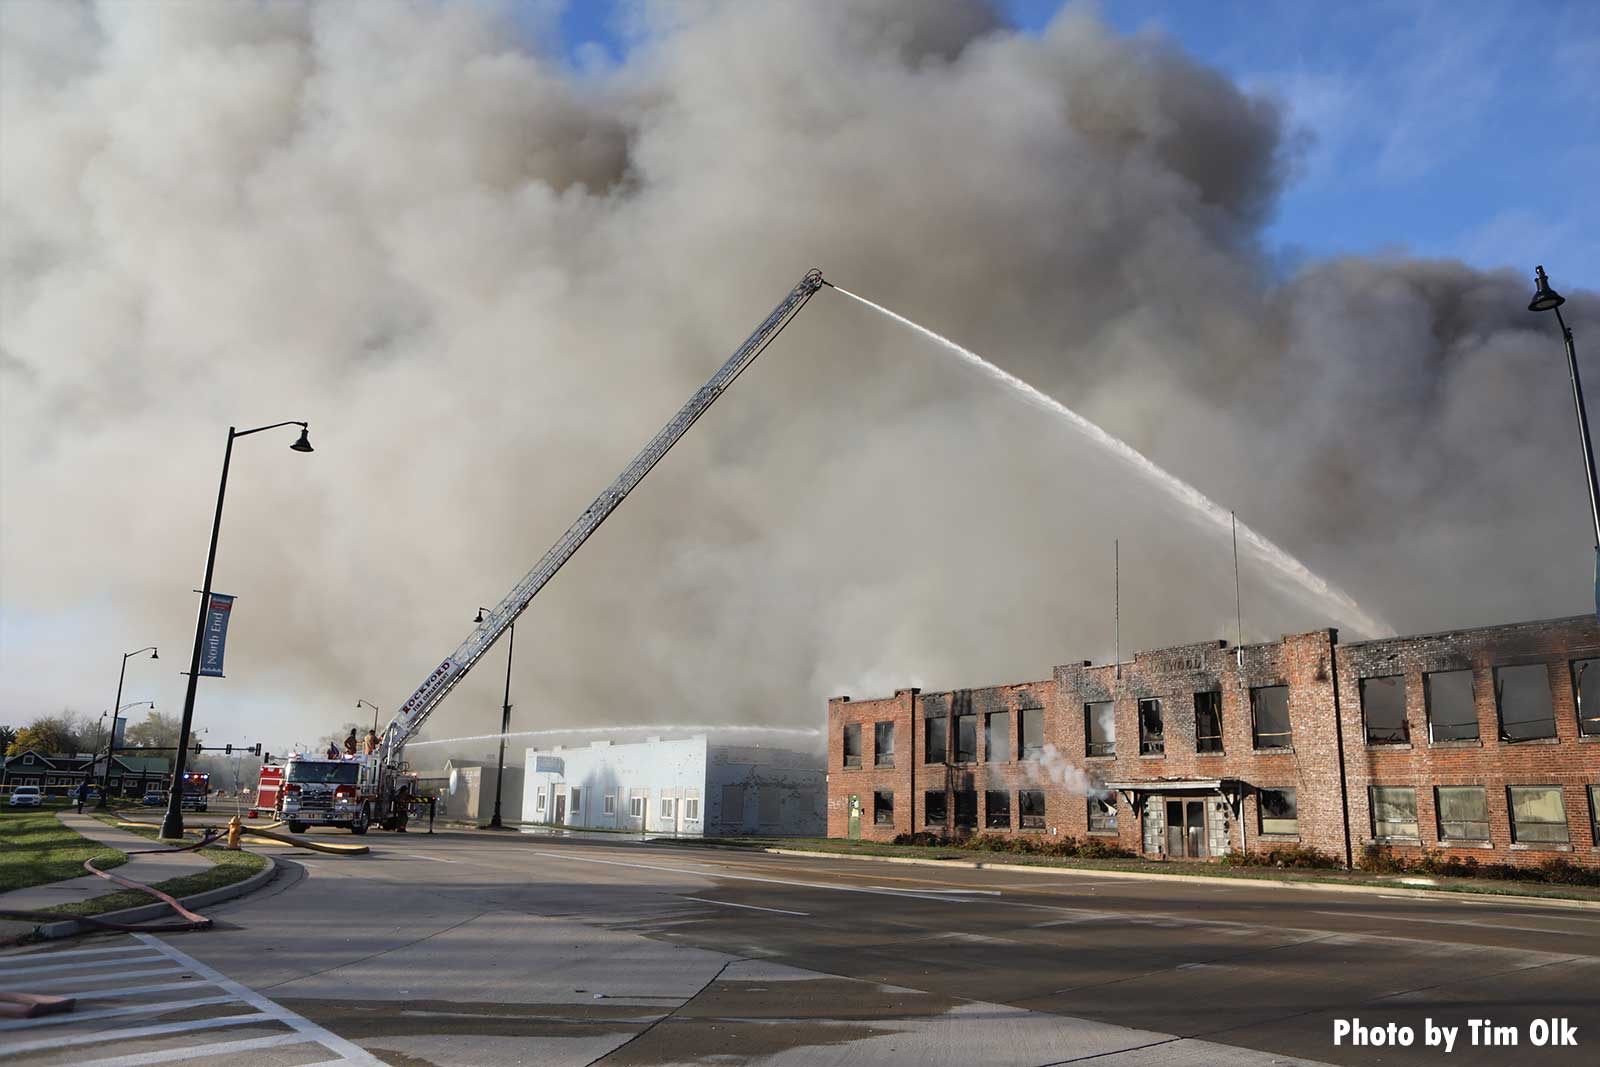 Aerial master stream with smoke from burning building